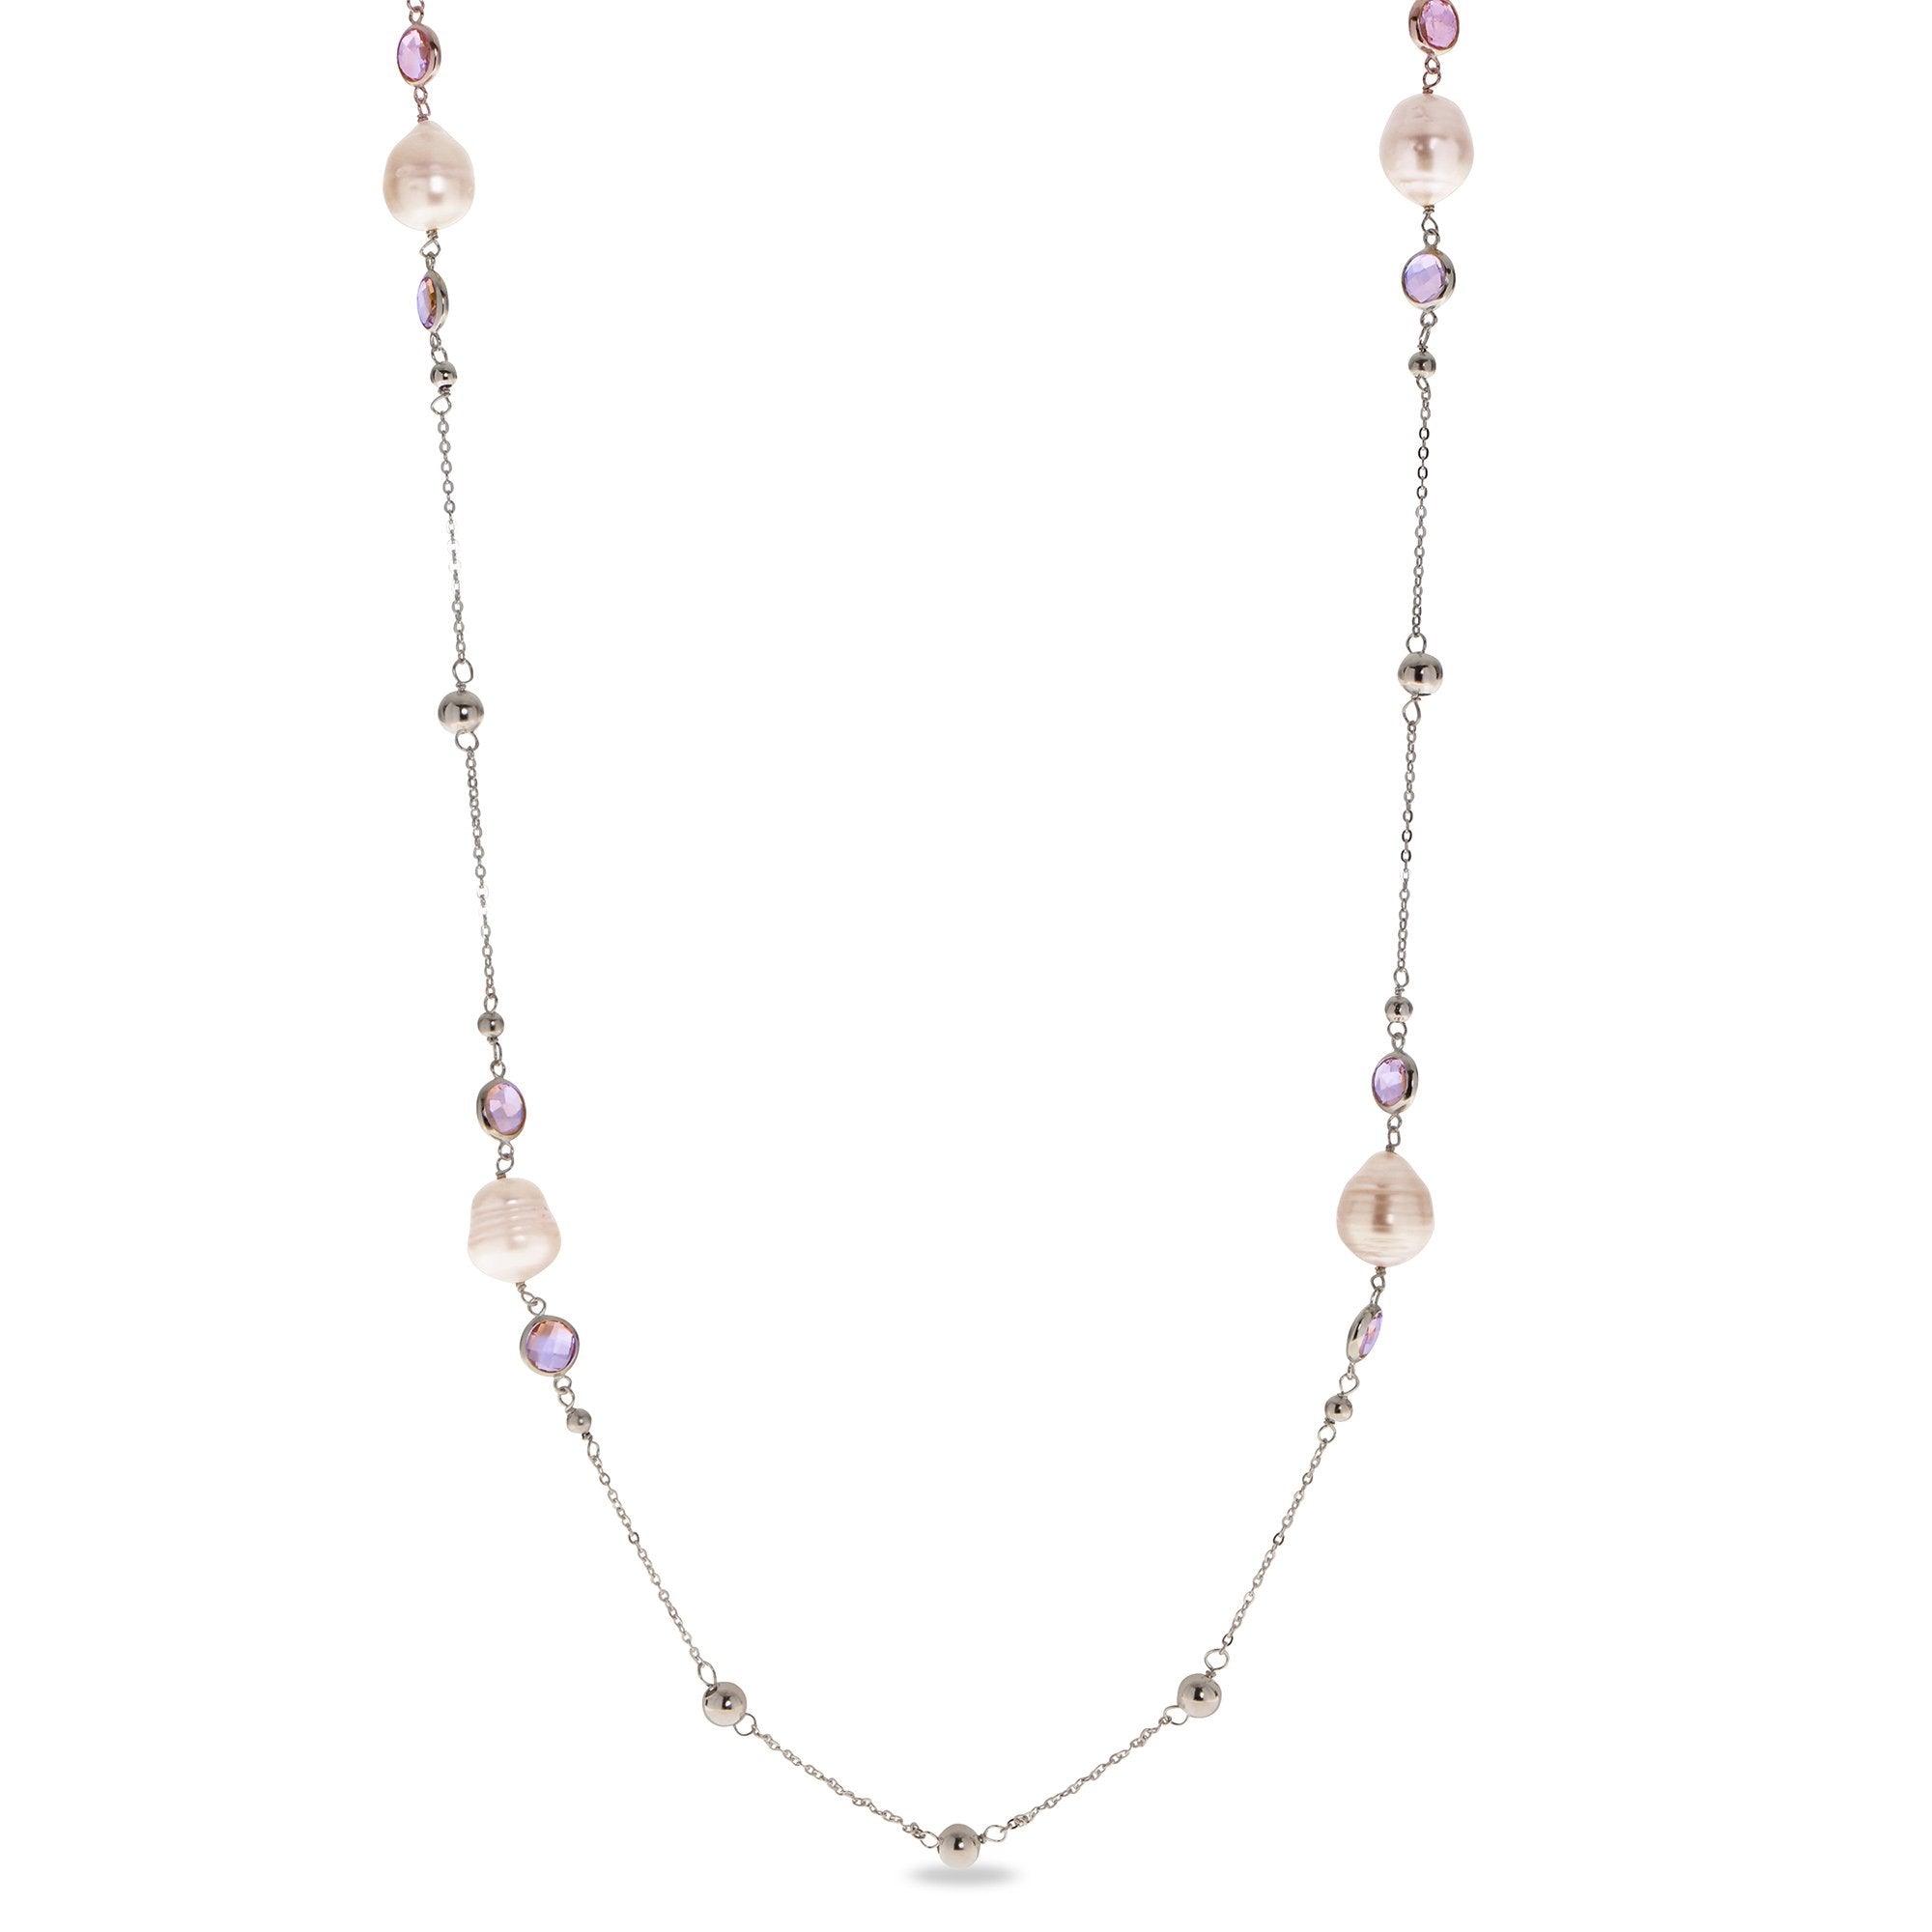 Long Length Pearl and Amethyst Necklace